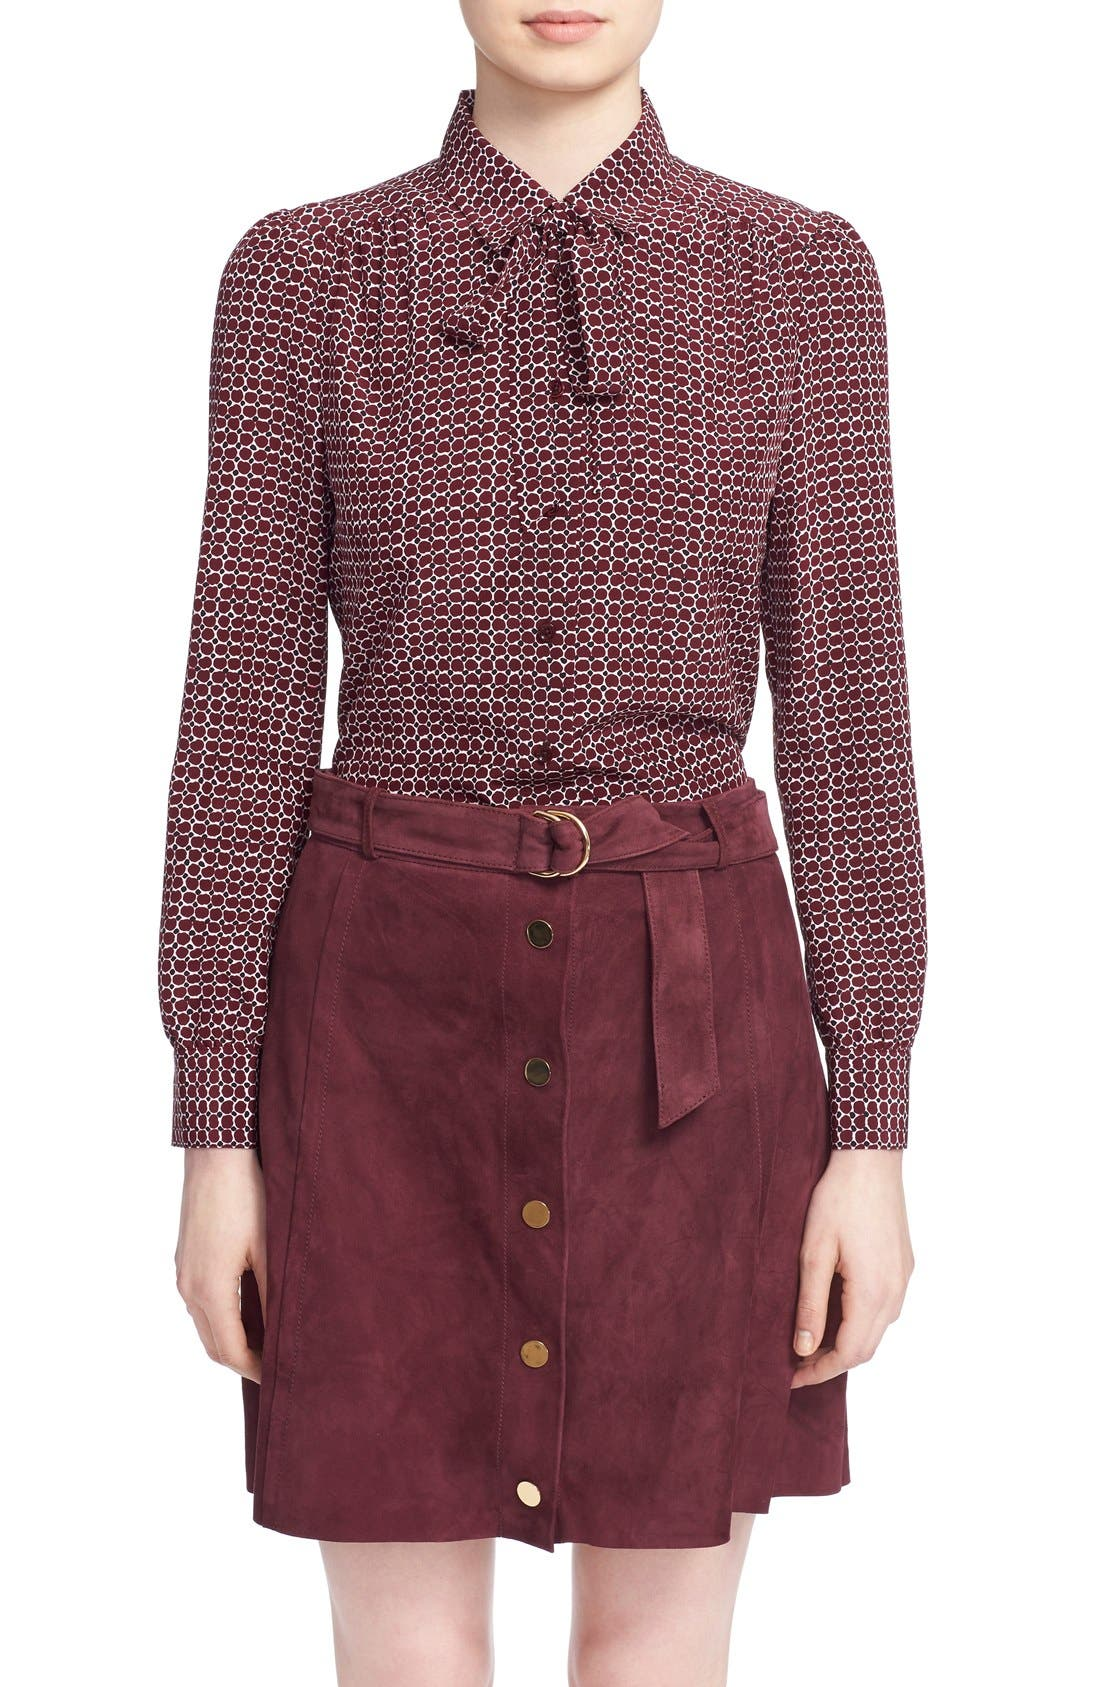 Alternate Image 1 Selected - kate spade new york 'parker dot' print silk bow blouse